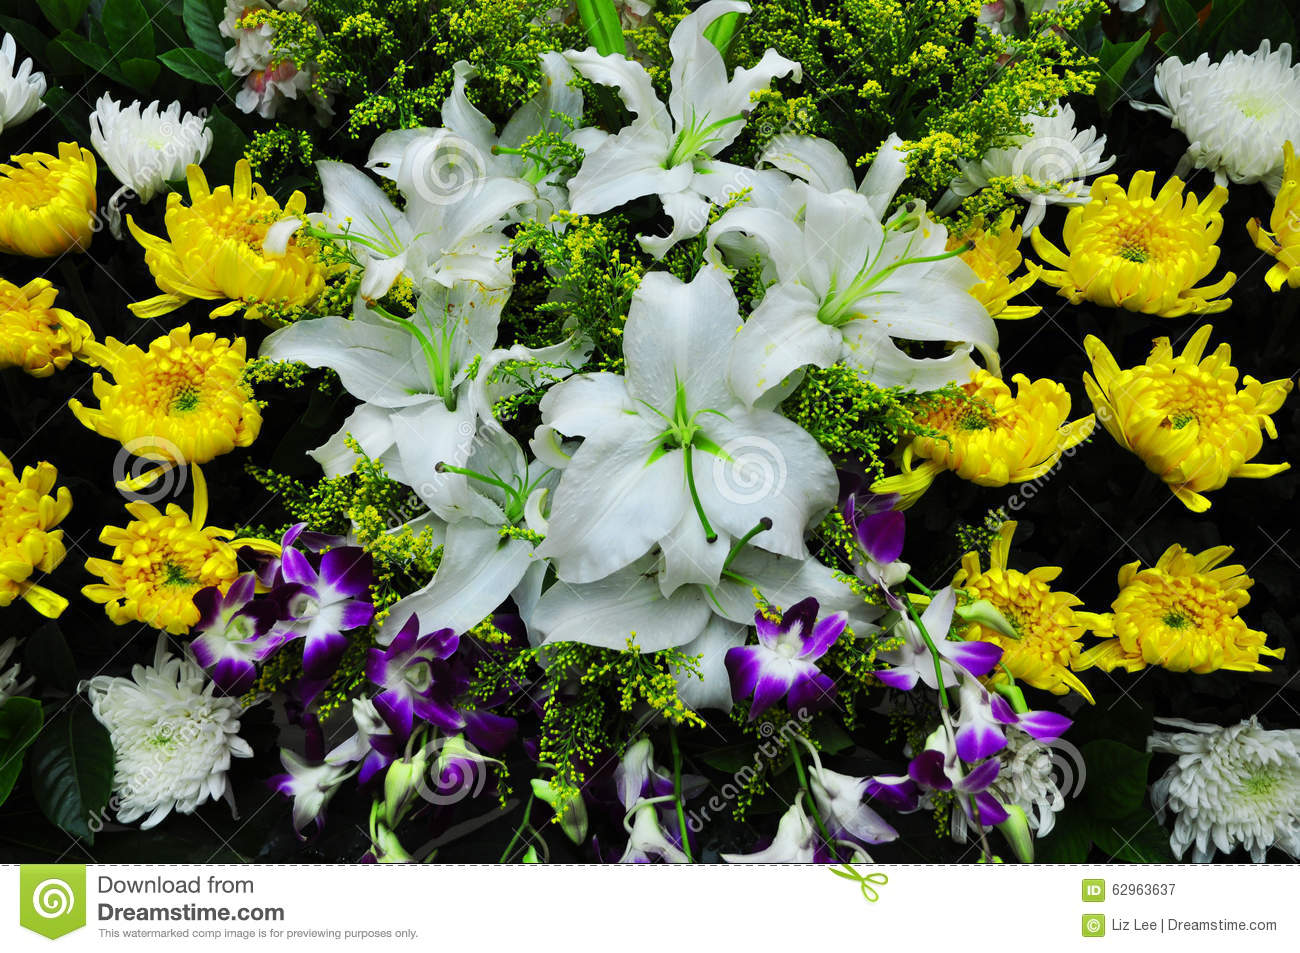 Funeral flowers for condolences stock photo image of eastern funeral flowers for condolences royalty free stock photography izmirmasajfo Image collections